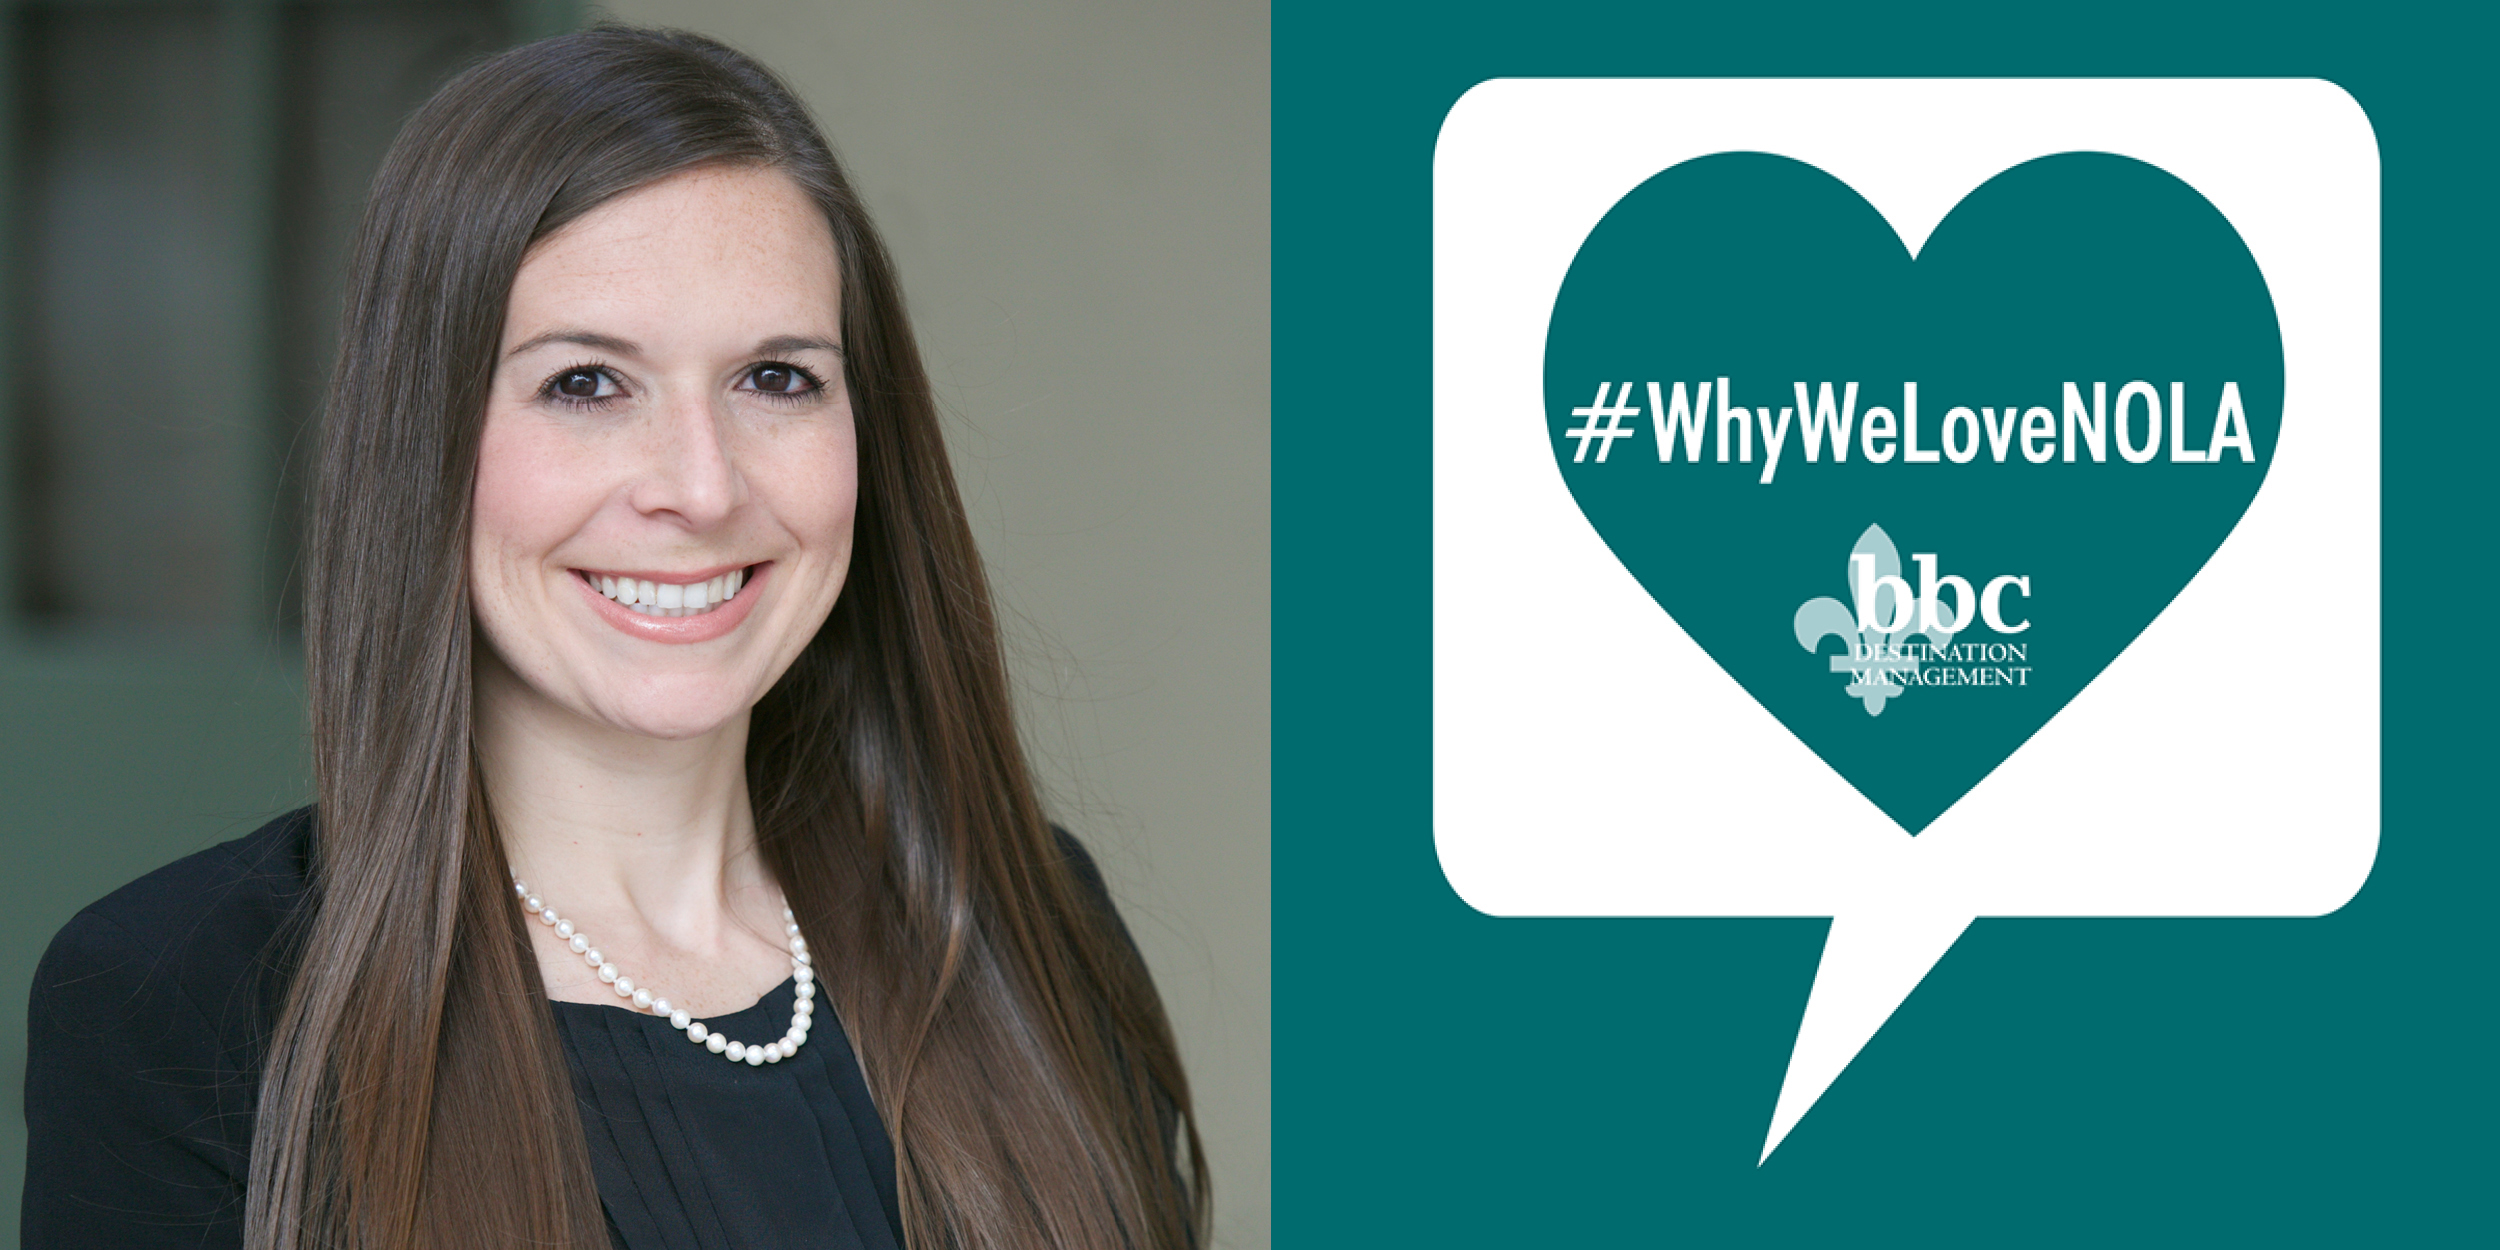 #WhyWeLoveNOLA: Jennifer Stanton, Operations Manager